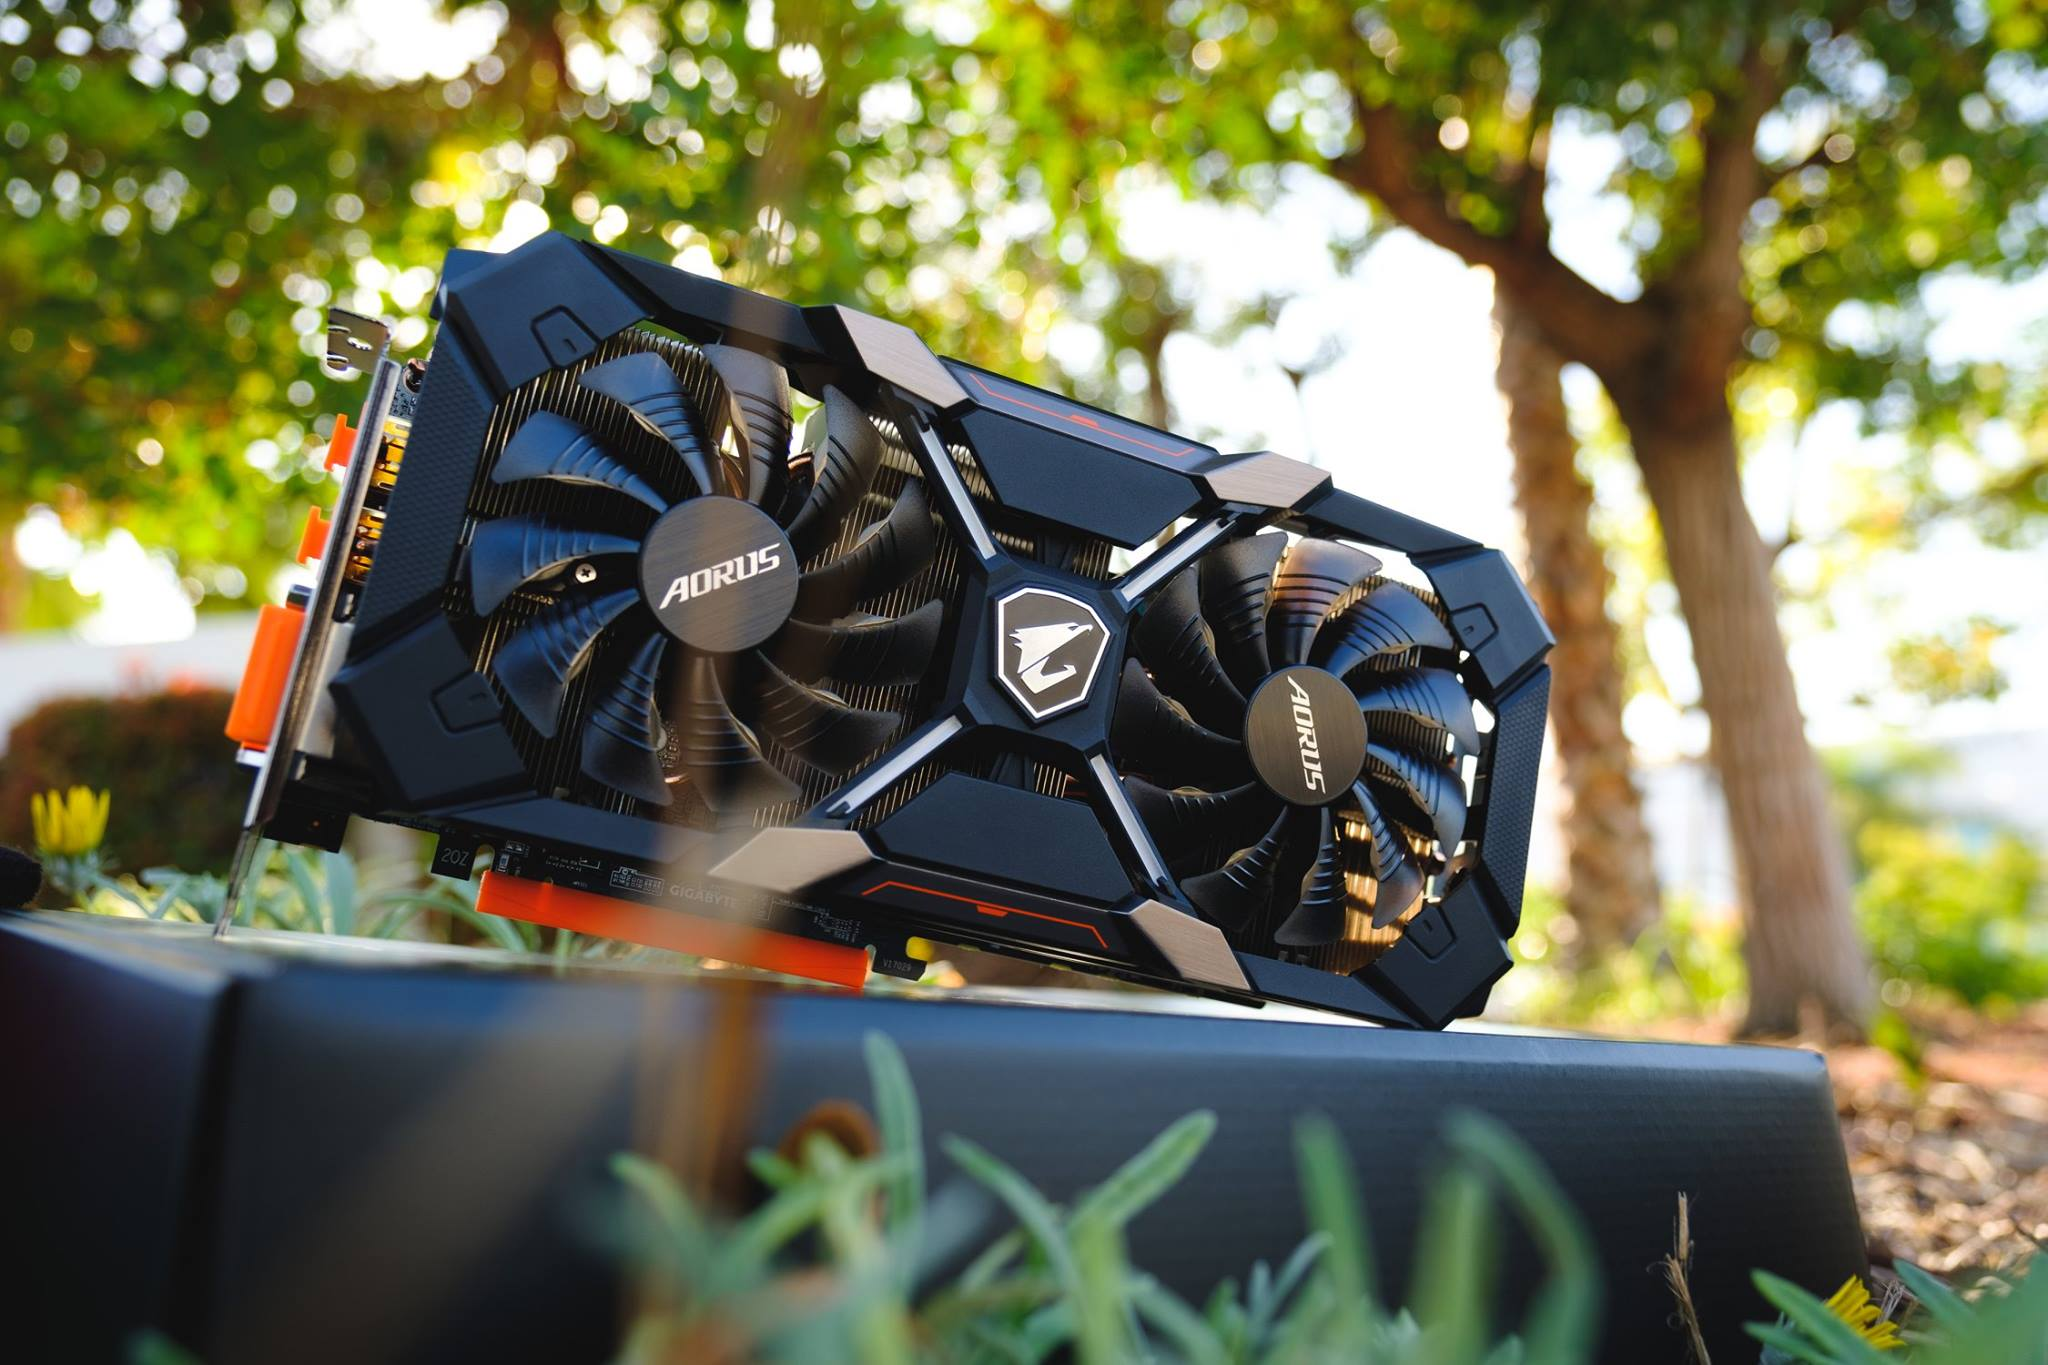 Gigabyte's RX 580 Aorus has been pictured